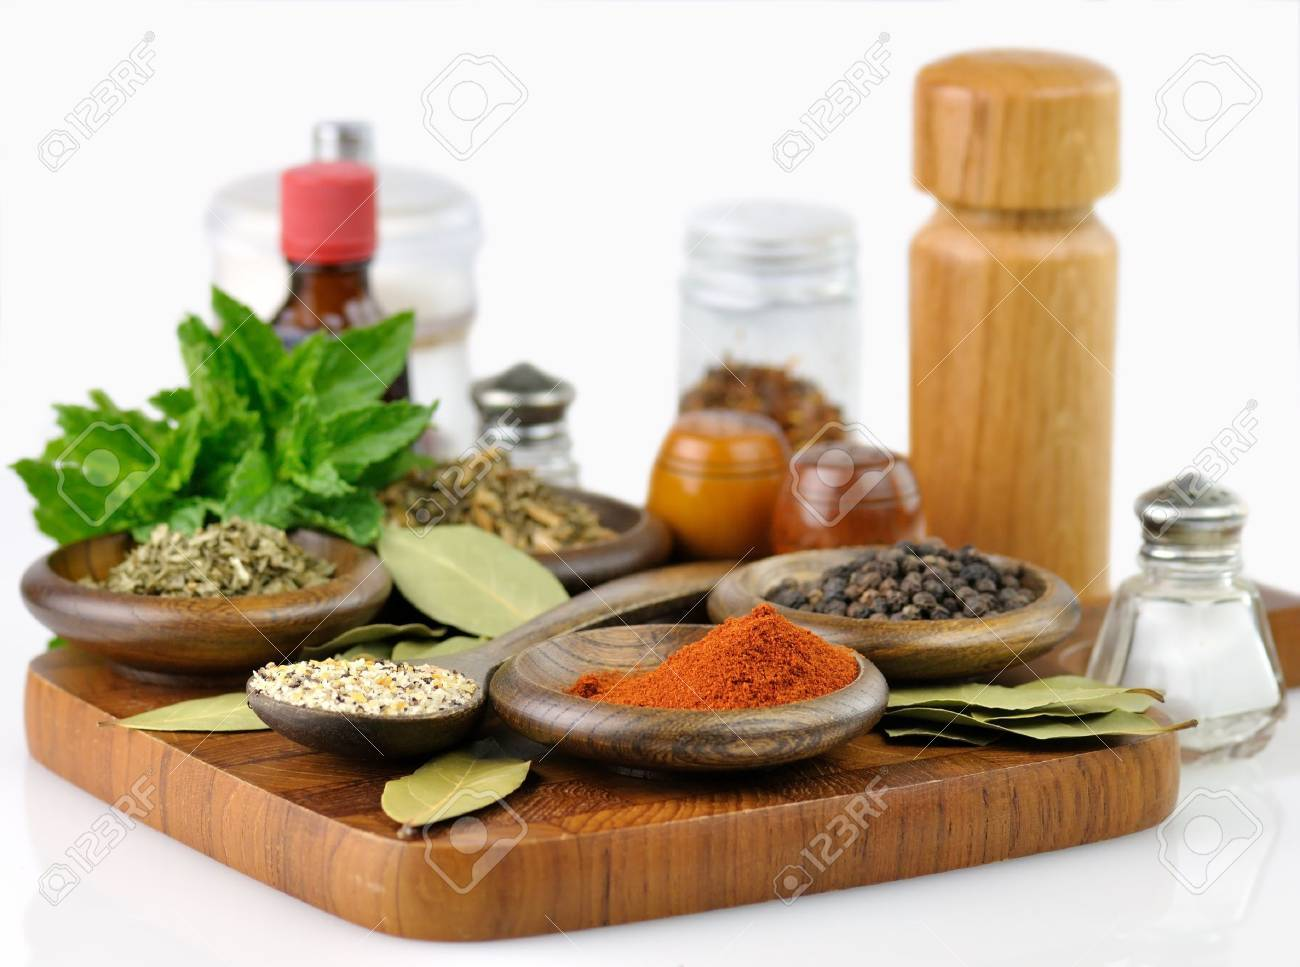 spices arrangement on a wooden board , close up Stock Photo - 9834484